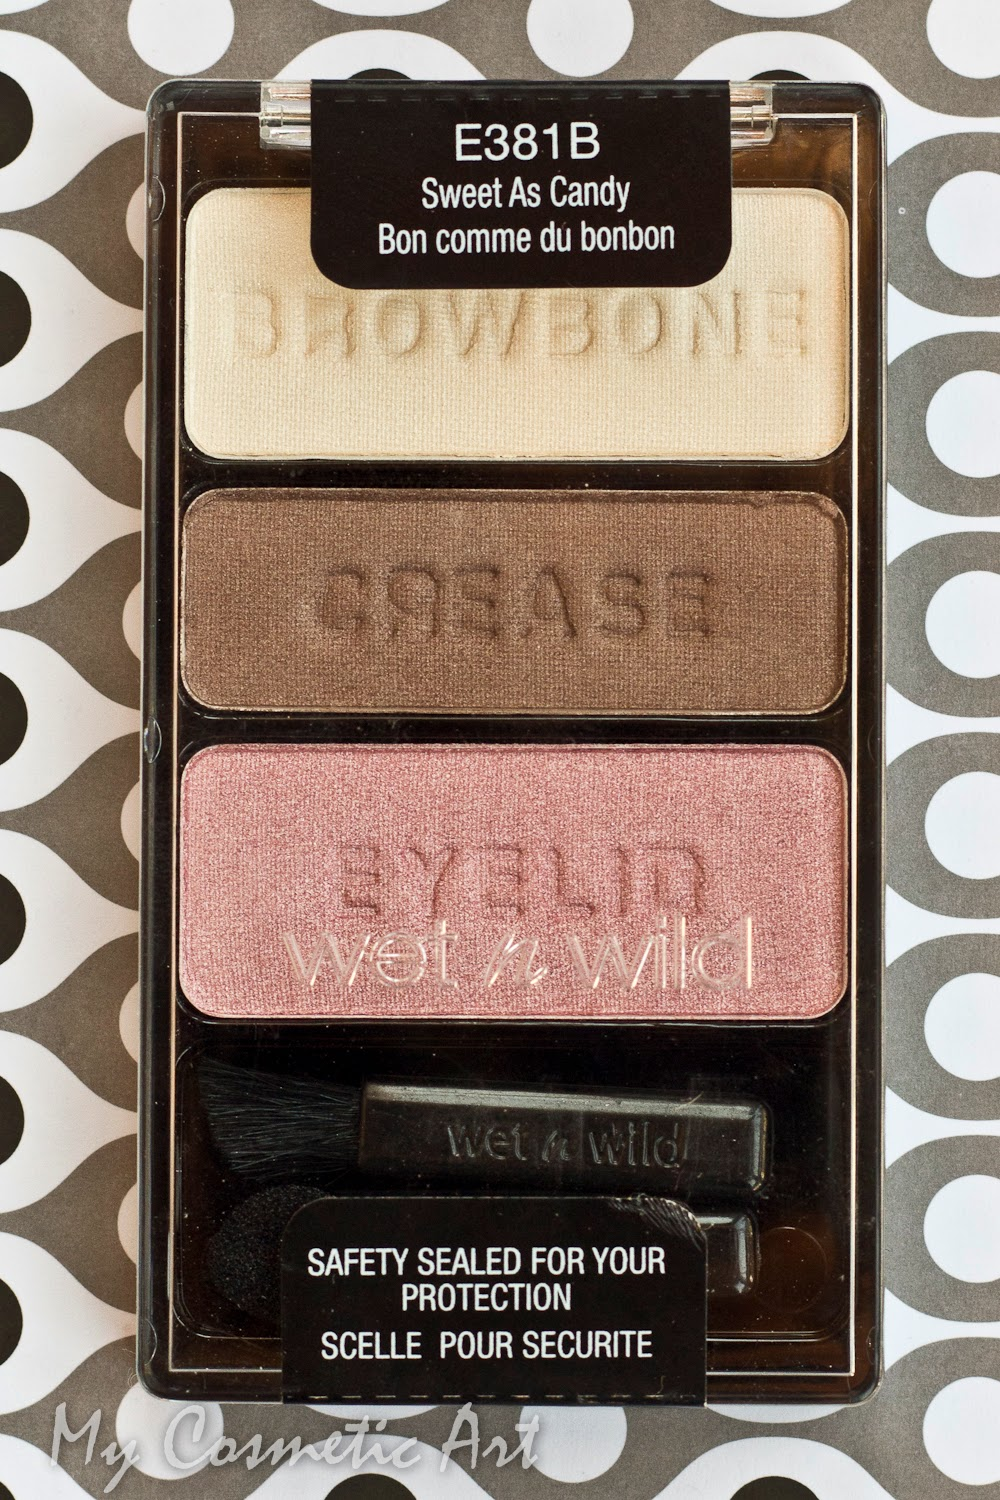 Trio de sombras de Wet'n'Wild Sweet as Candy